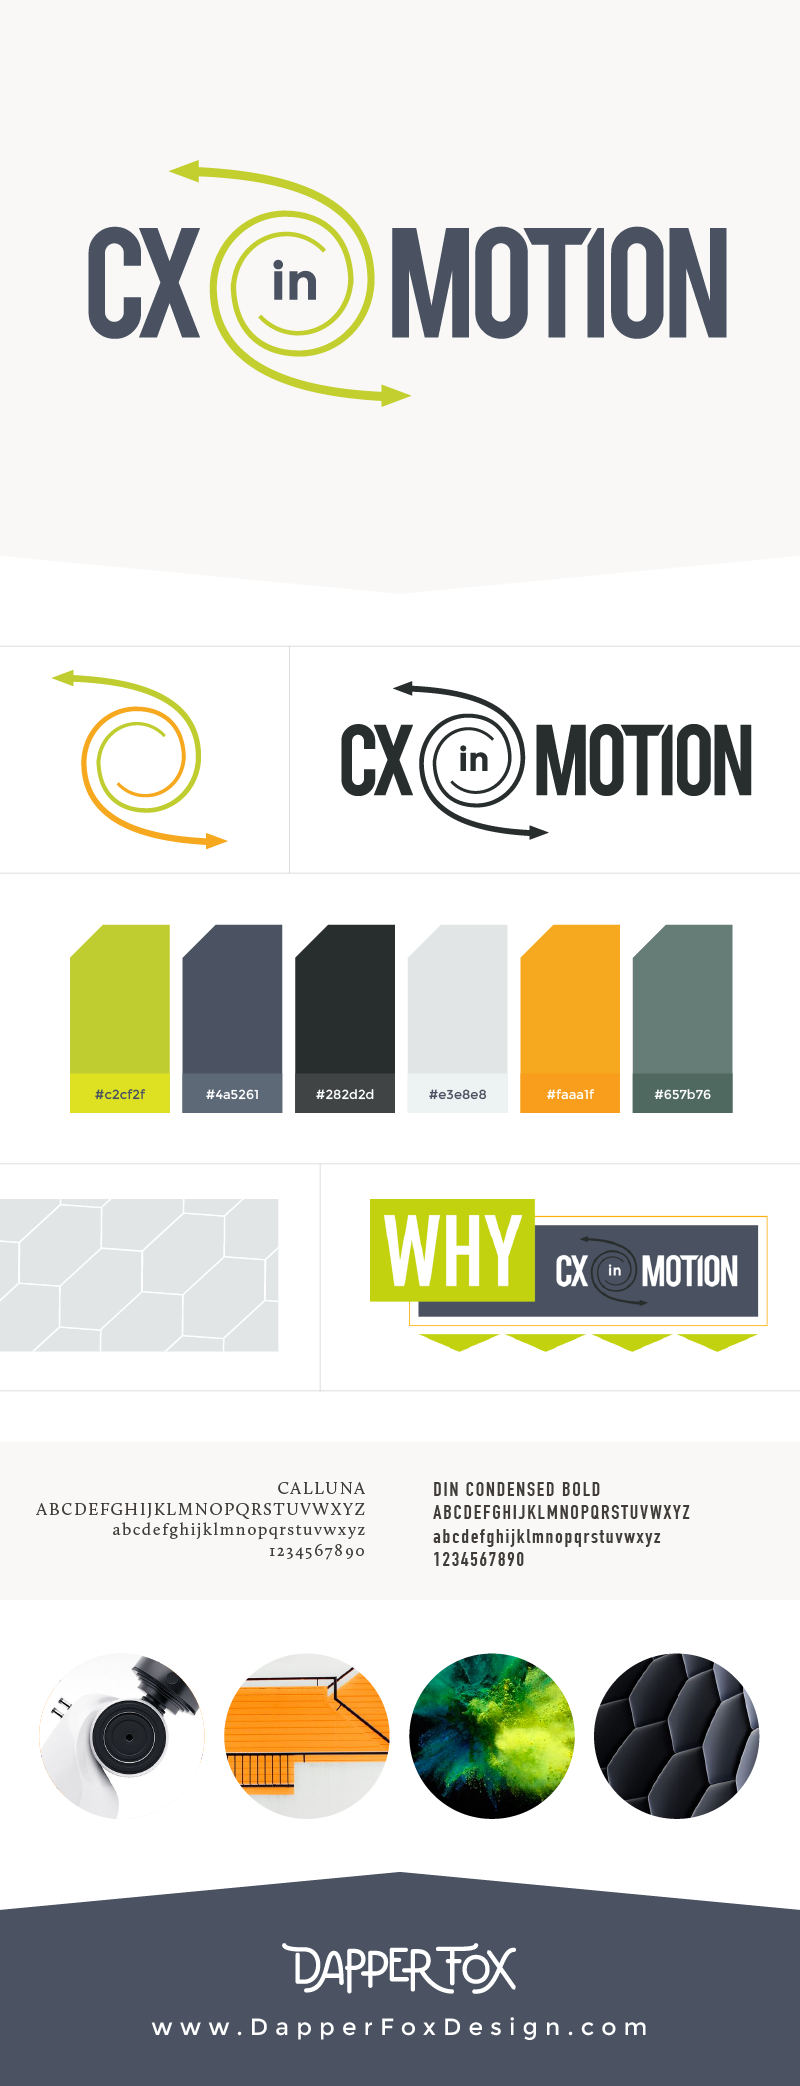 CX in Motion - Technology Company based in UK - Modern Logo and Branding - Logo, Blog and Website Design by Dapper Fox in Park City, Utah.   #modernlogo  #corporatelogo     #consultantlogo  #cleanlogo  #logodesigninspiration  #logodesign     #branding